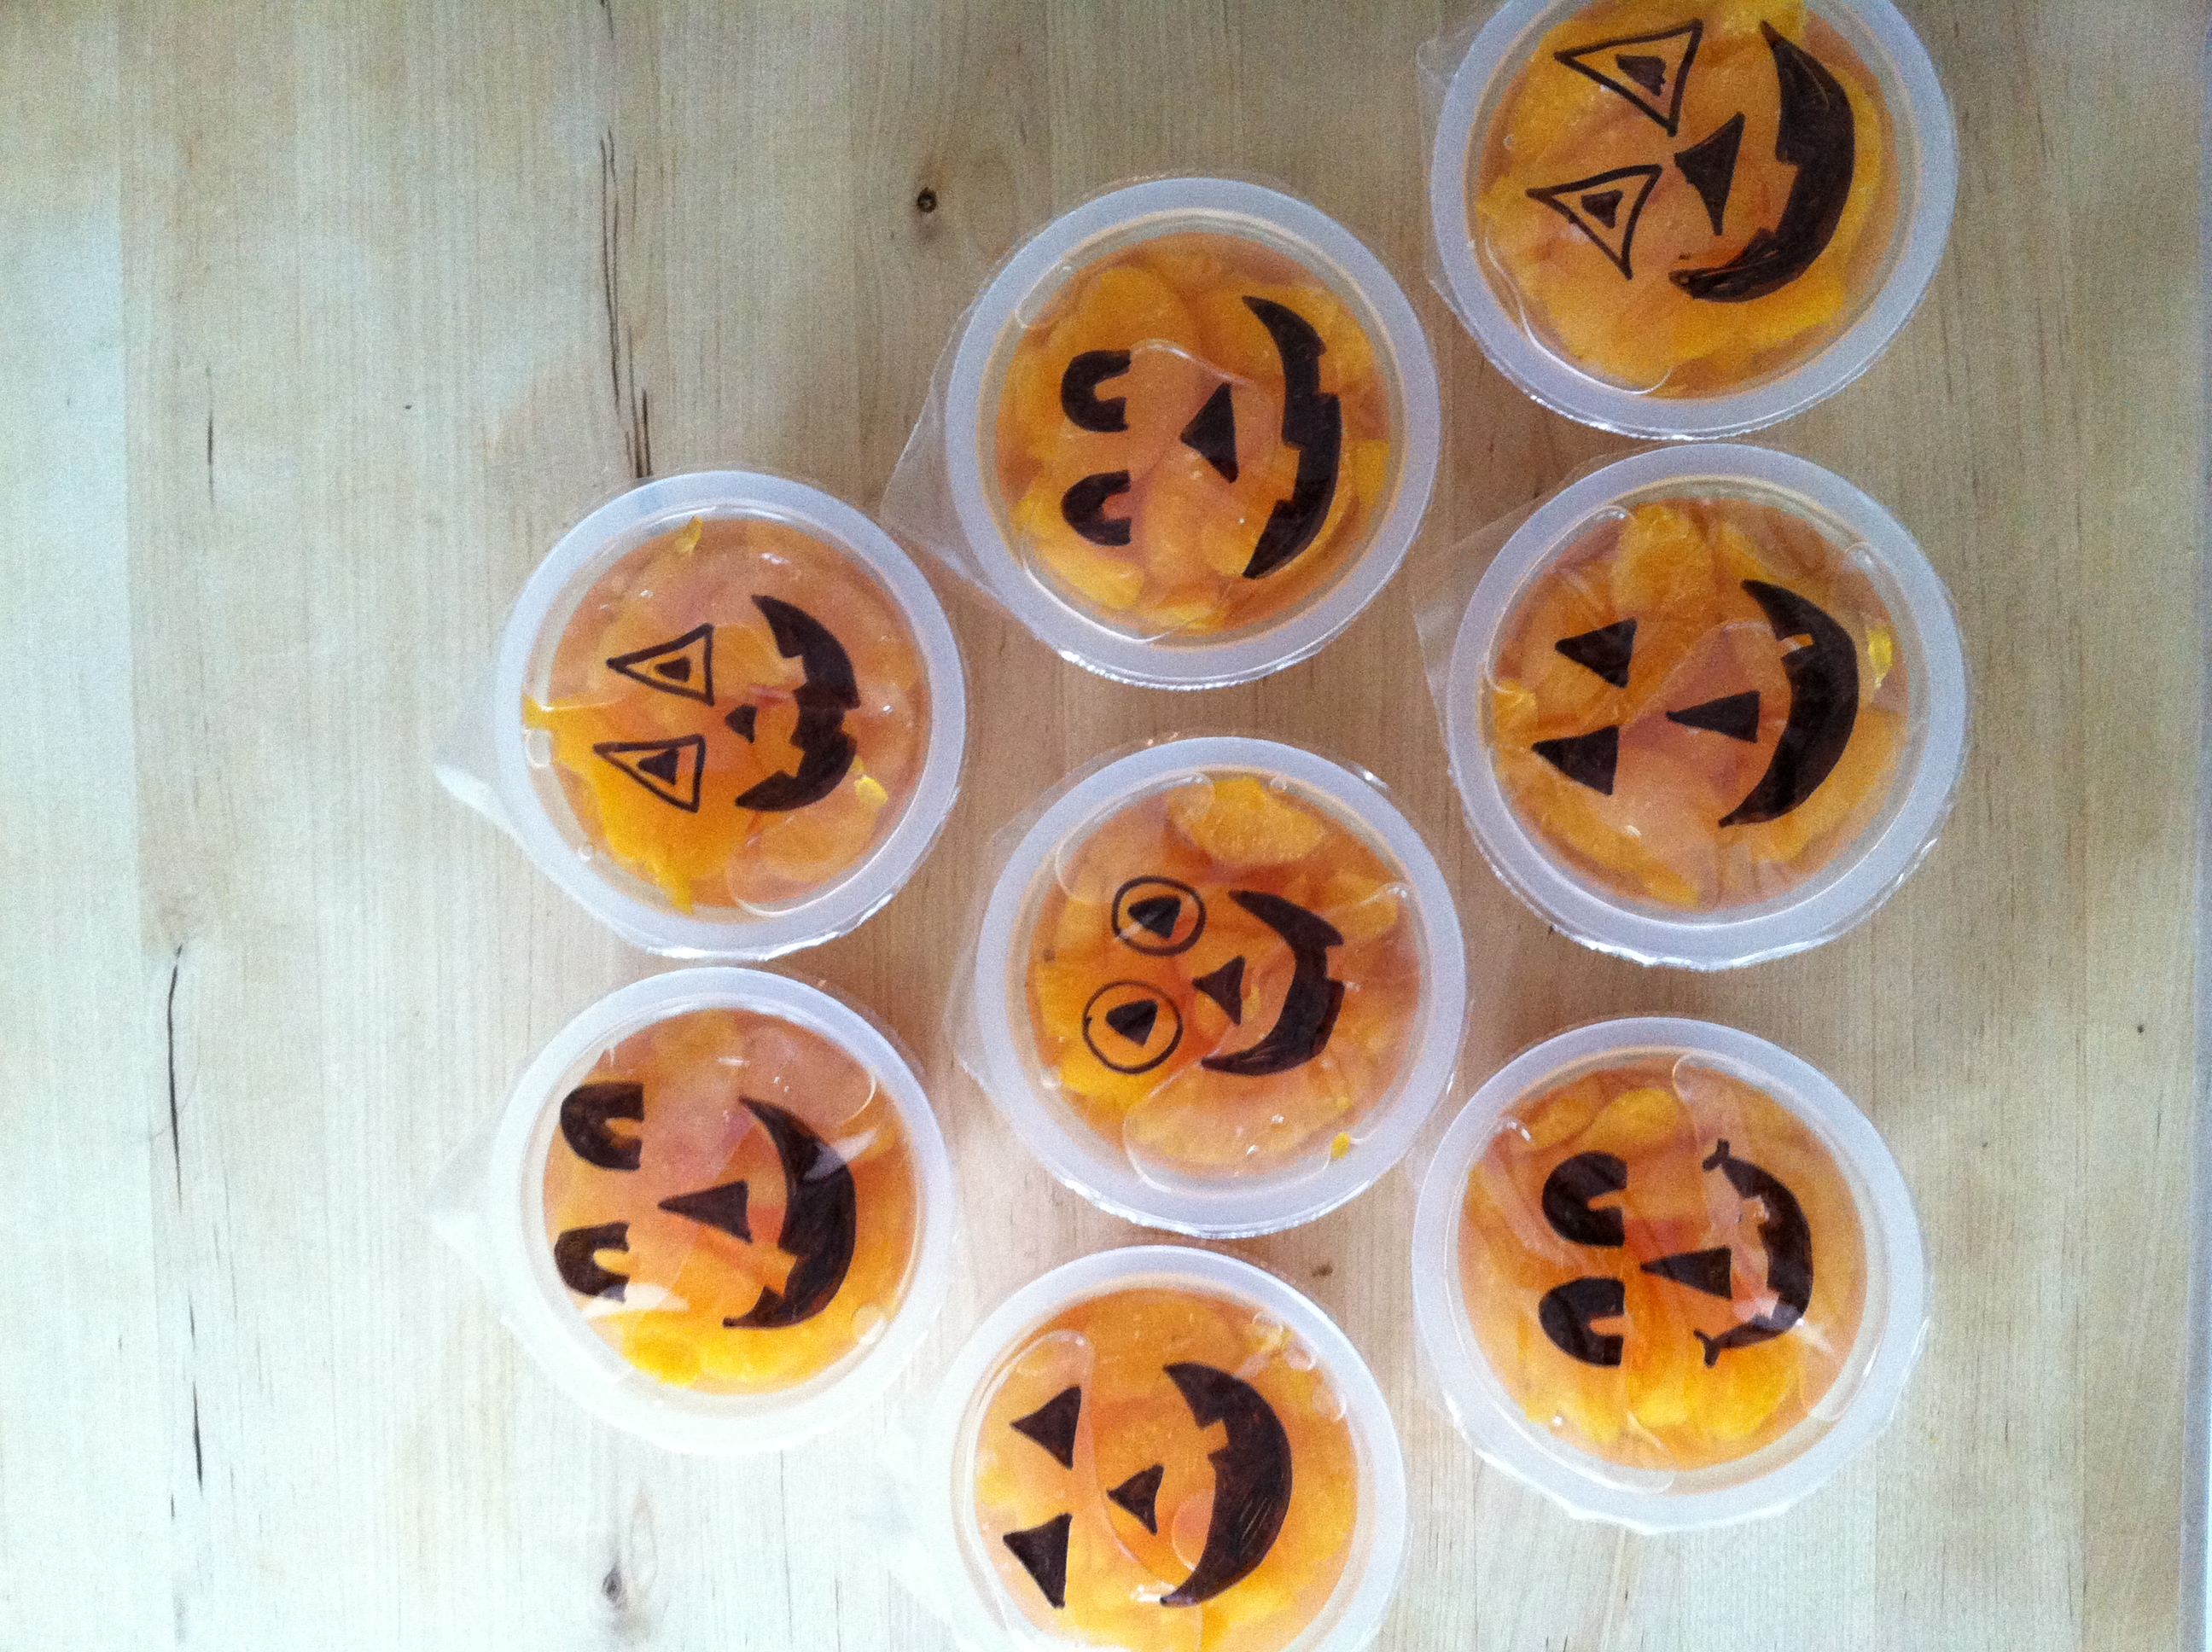 Drawn pumpkin october Faces hand Happy drawn with